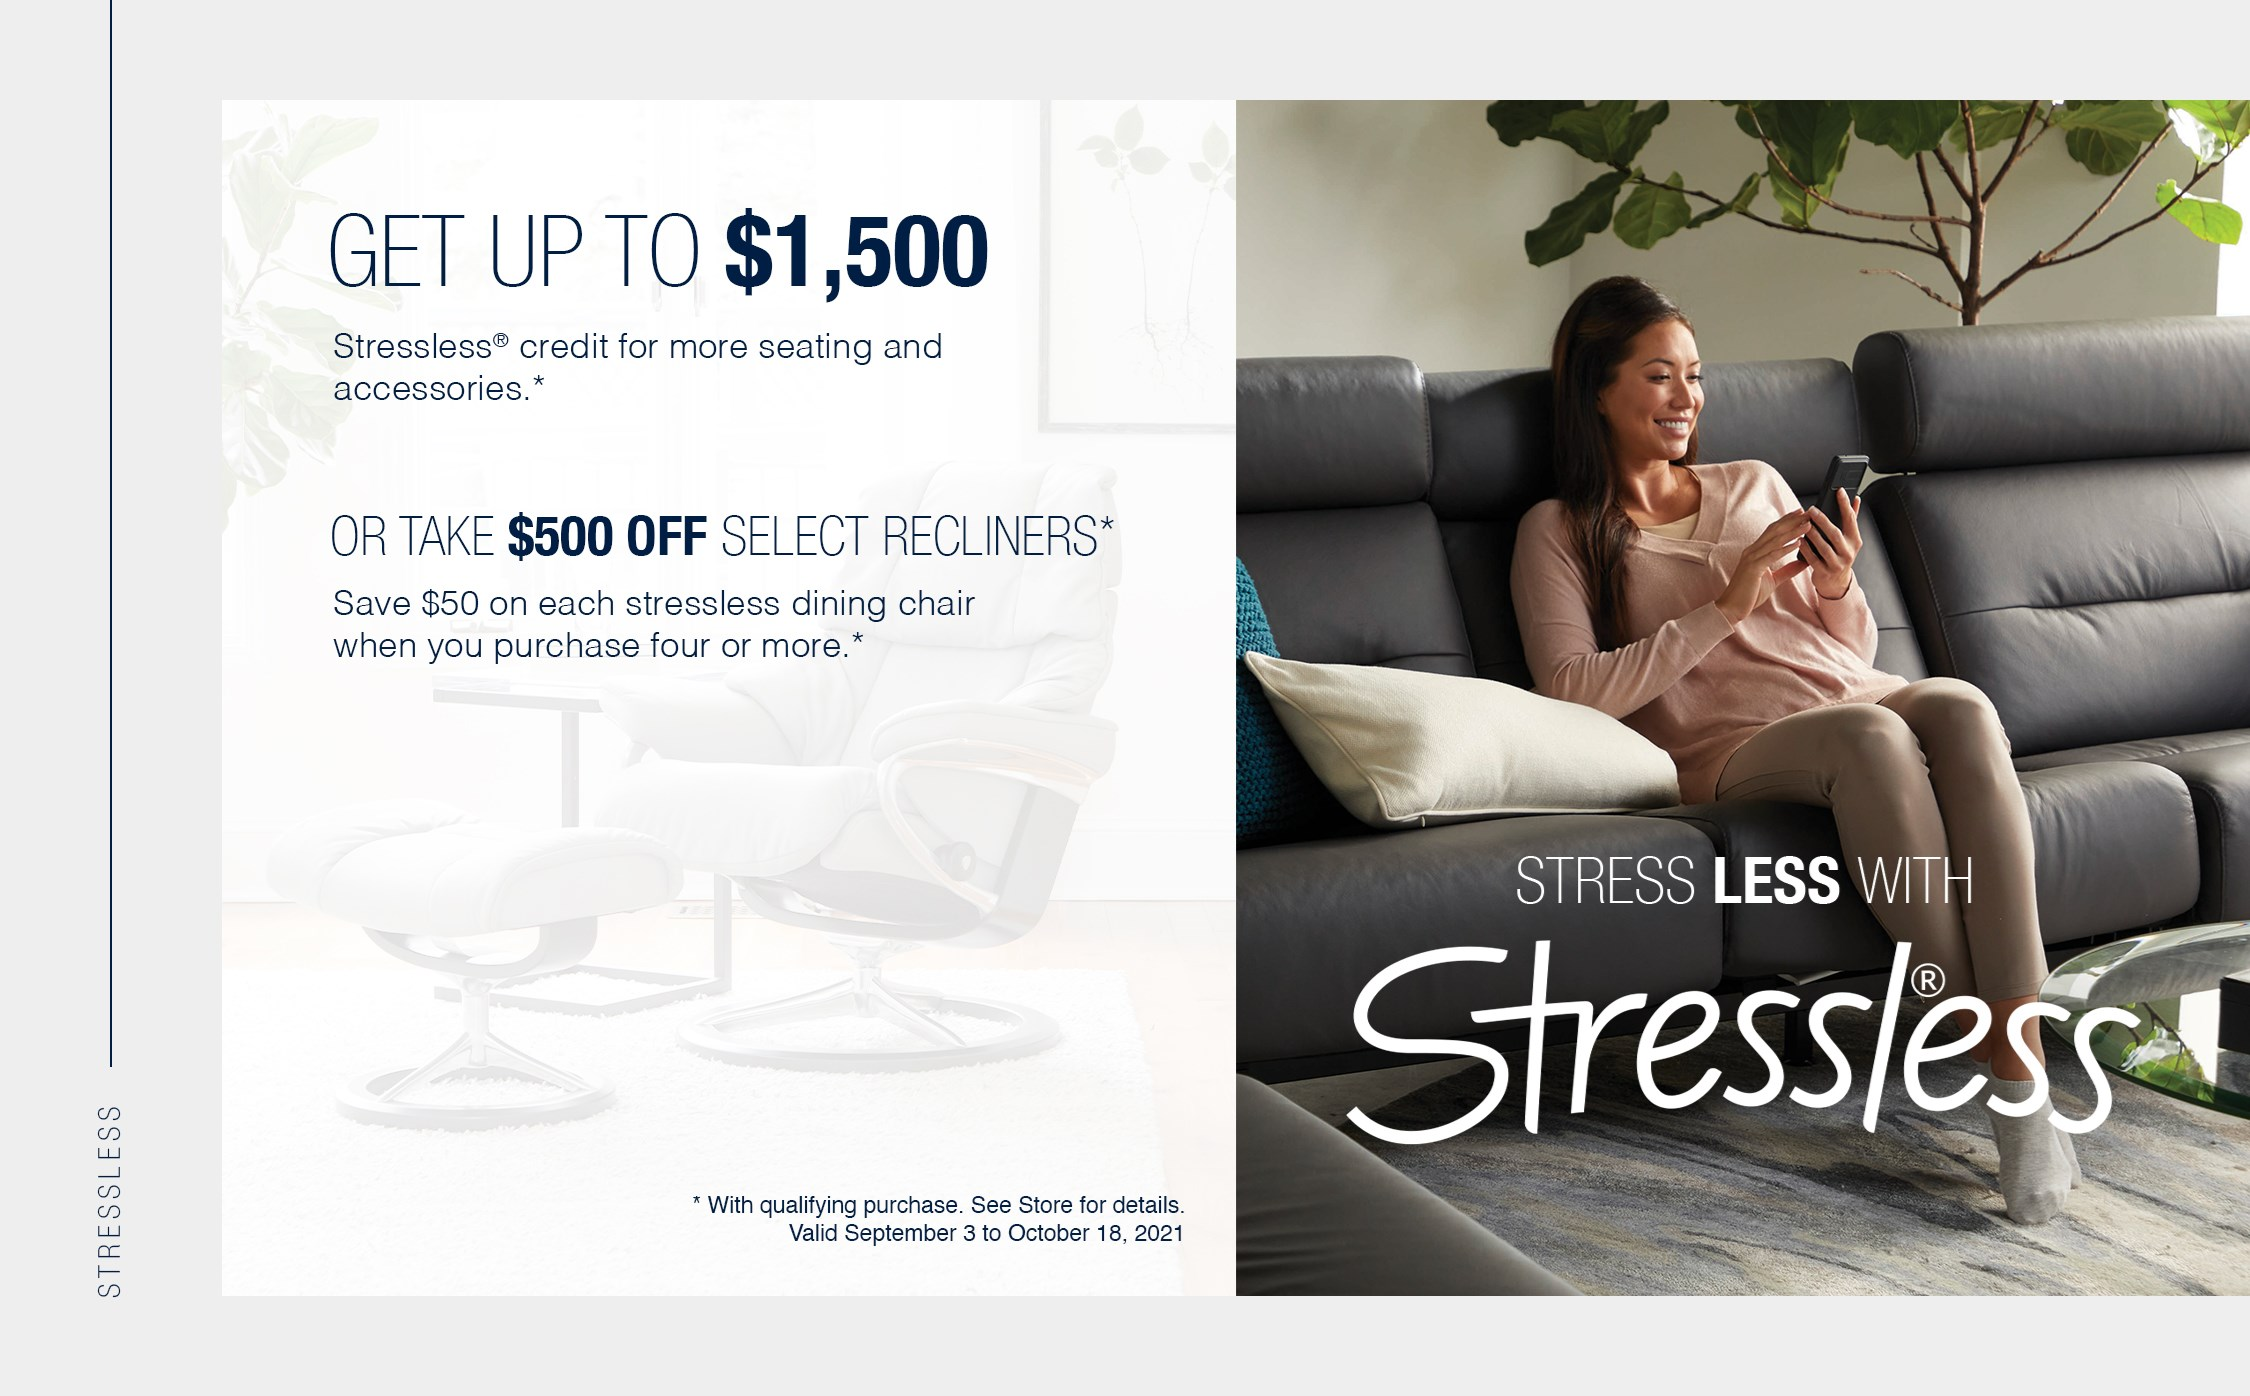 Get up to $1,500 Stressless® credit for more seating and accessories.* Or take $500 off select recliners* Save $50 on each Stressless dining chair when you purchase four or more* * with qualifying purchase. See store for details.   Valid September 3 to October 18, 2021